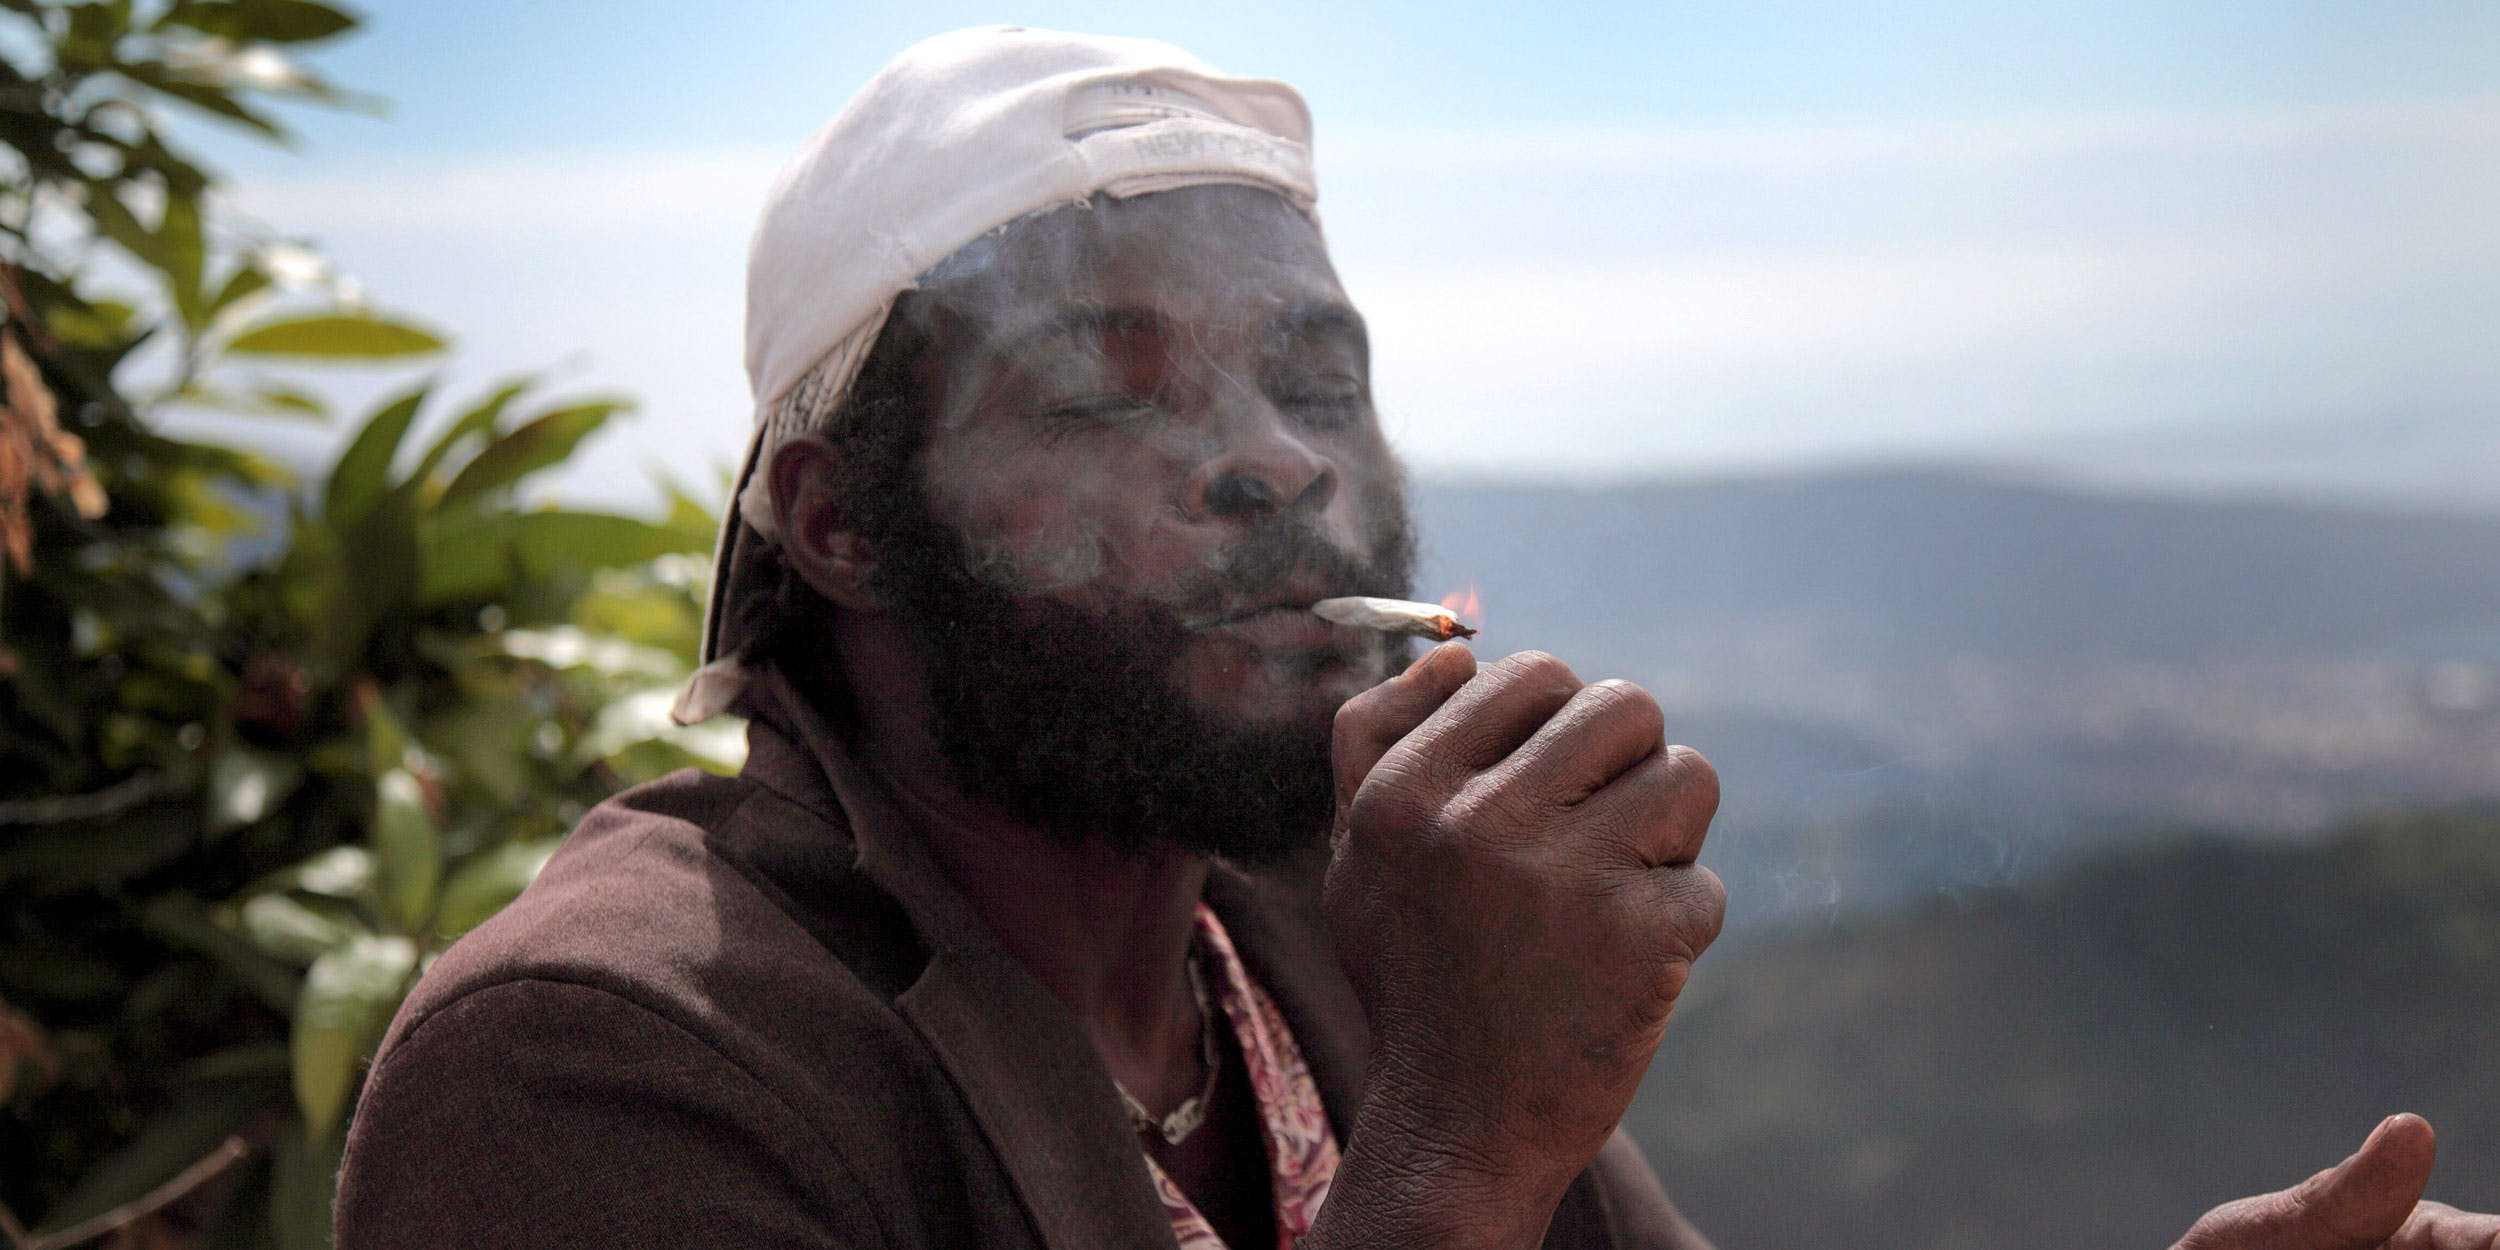 A man in Jamaica smokes weed. Jamaica is one of the five countries most likely to legalize cannabis in the near future.